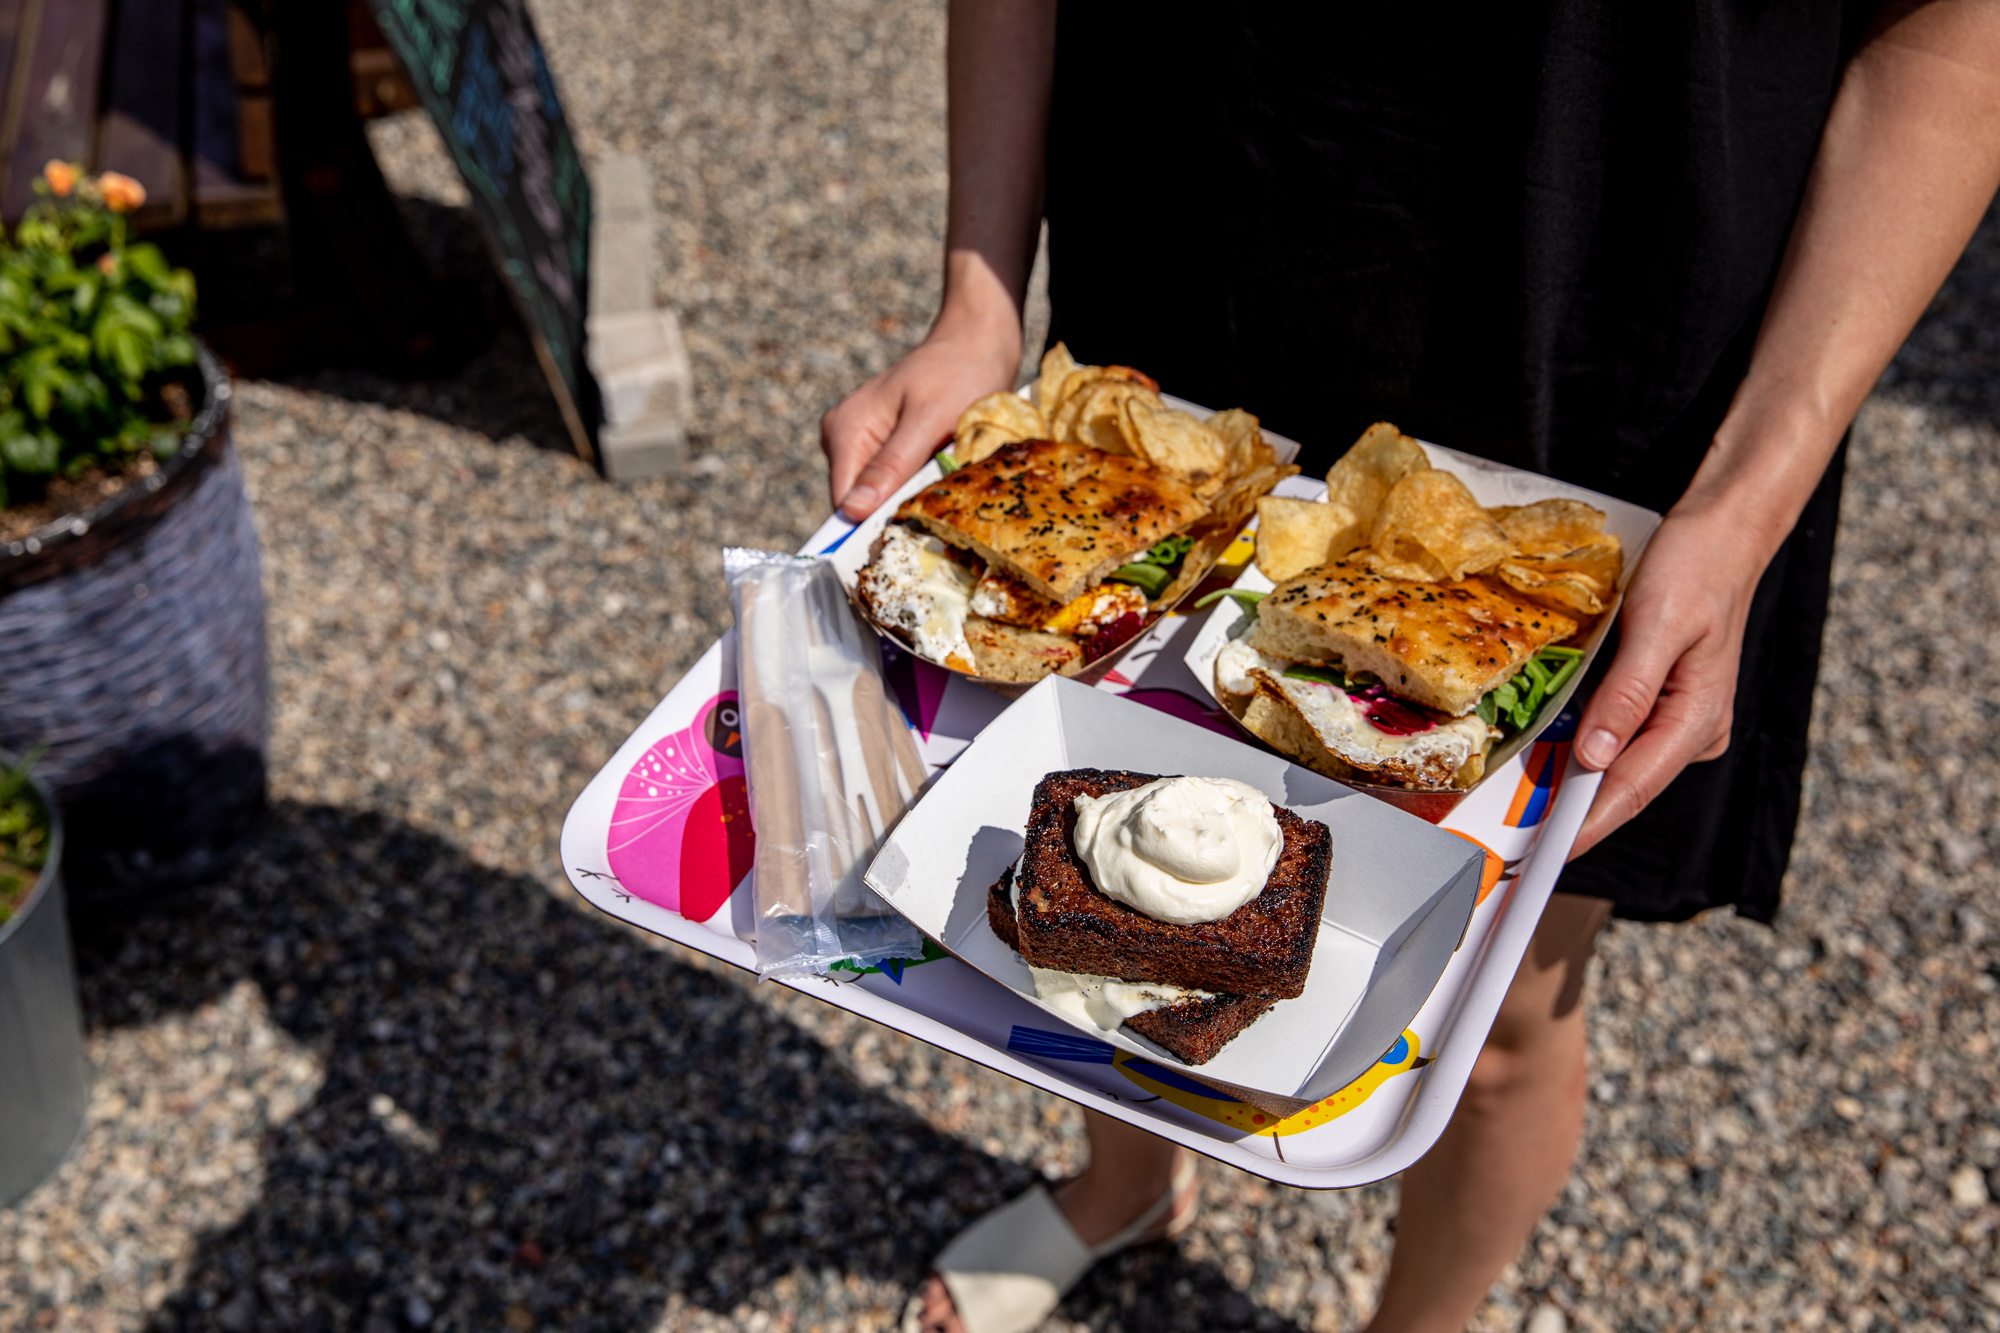 A platter with two sandwiches and dessert bread in the hands of a woman with a black dress and white slip on shoes.